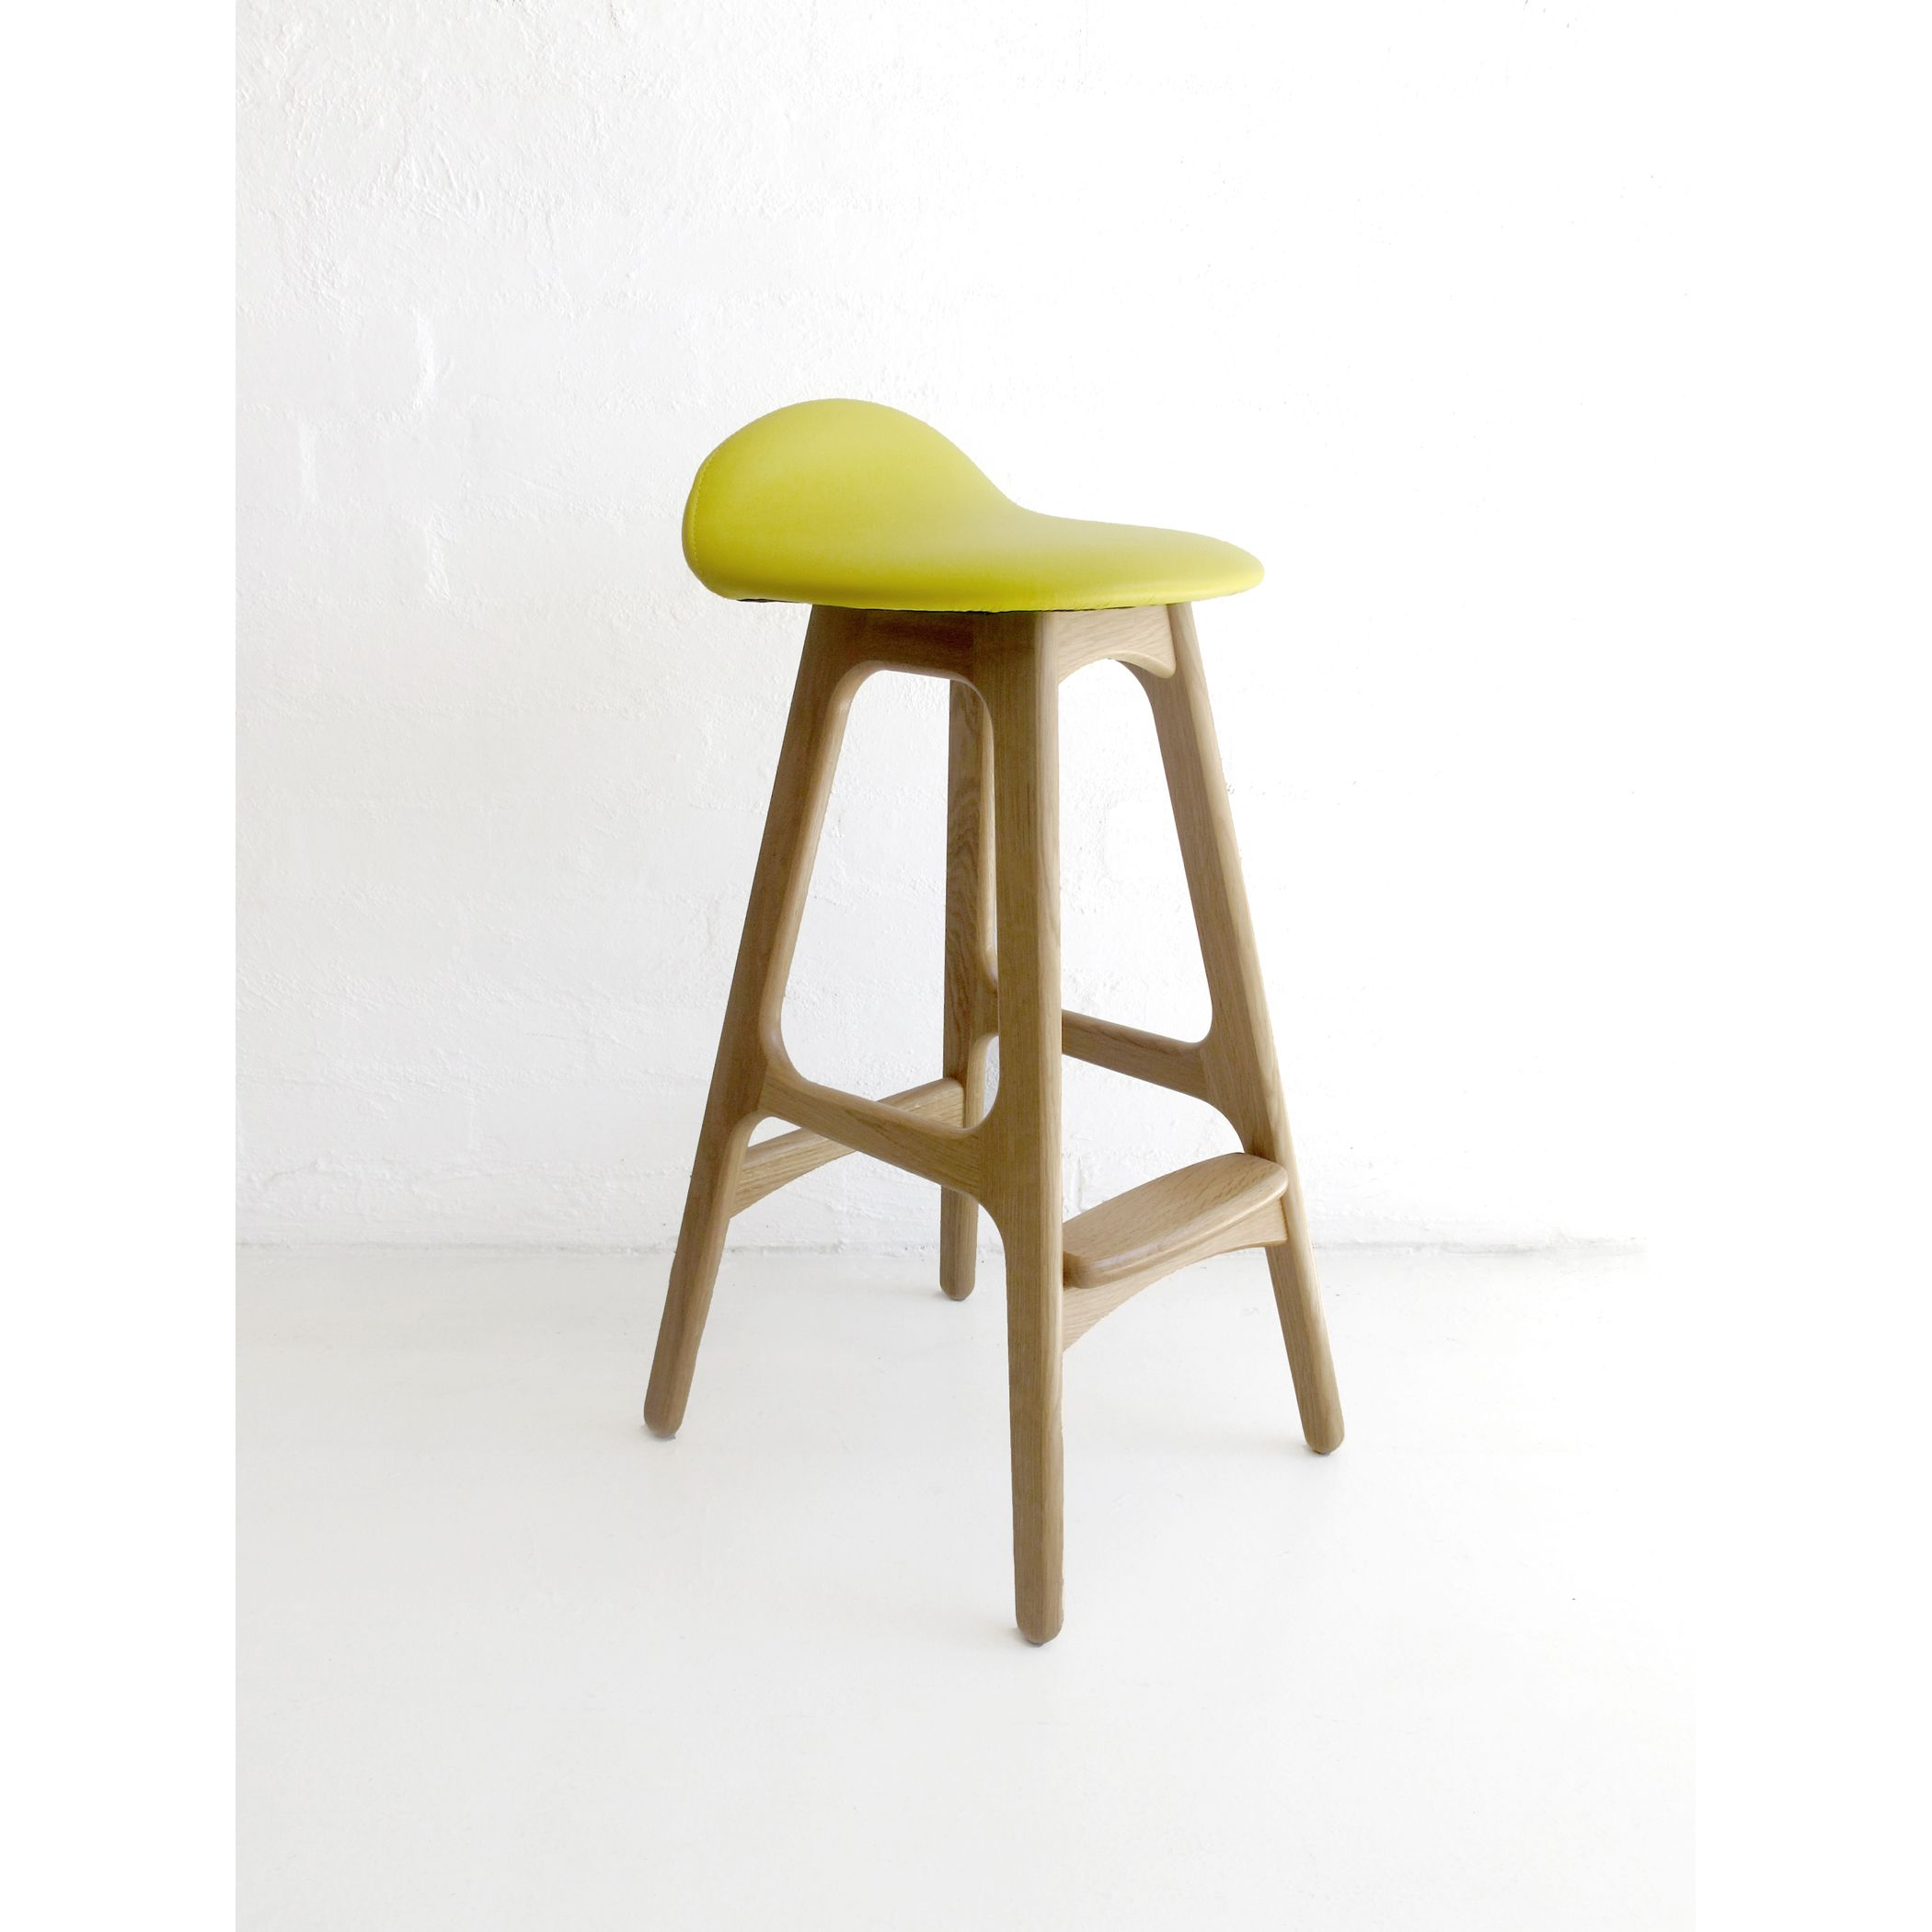 Another Eric Buch Bar Stool But This One In A Lovely Yellow And It S An